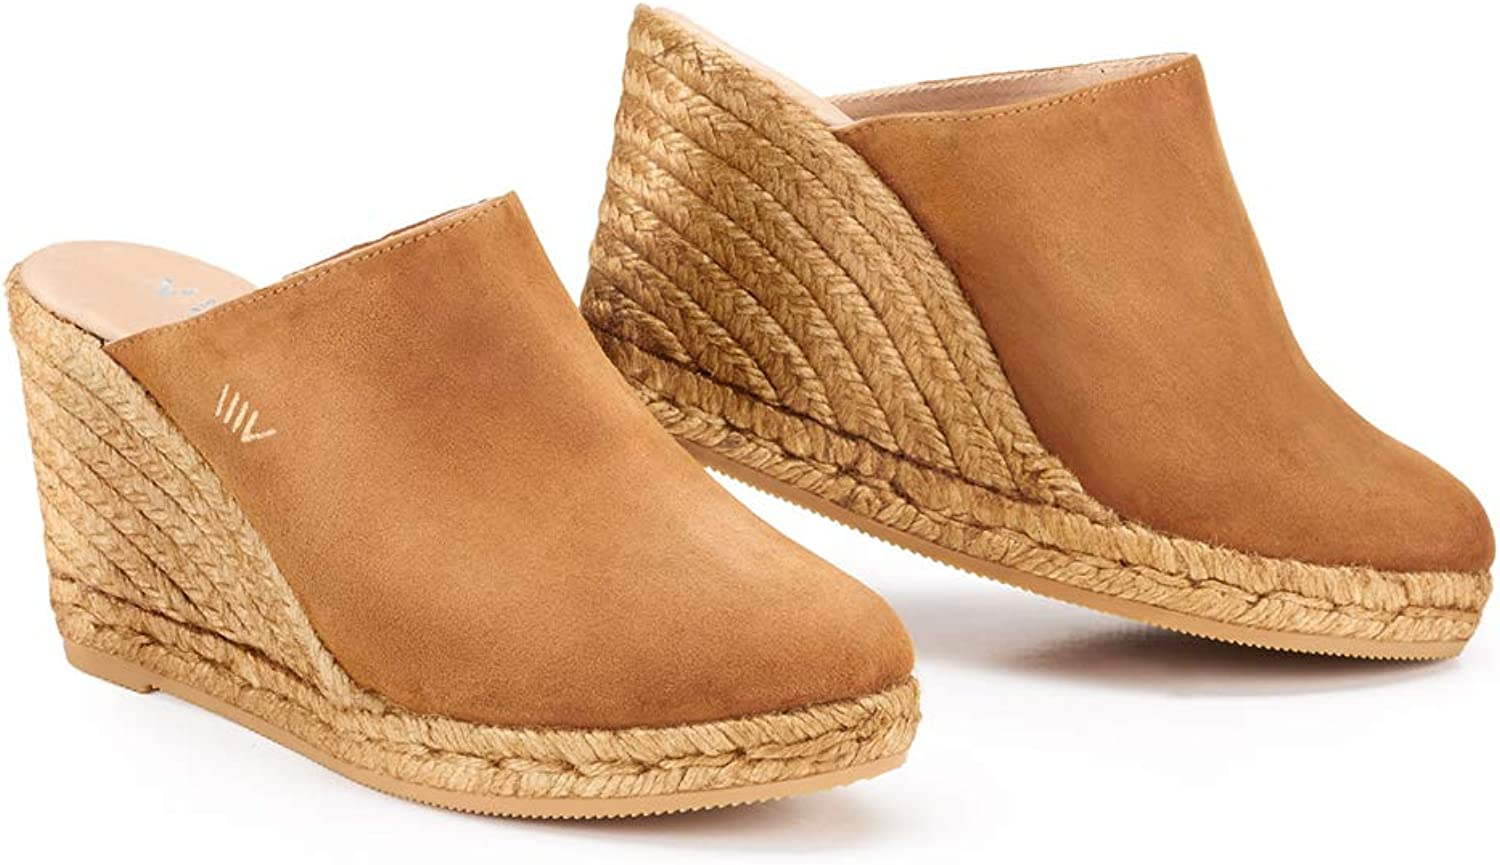 VISCATA Handmade in Spain Estreta Soft Suede 3  Clog, Slip-on, Closed Toe, Espadrilles Heel